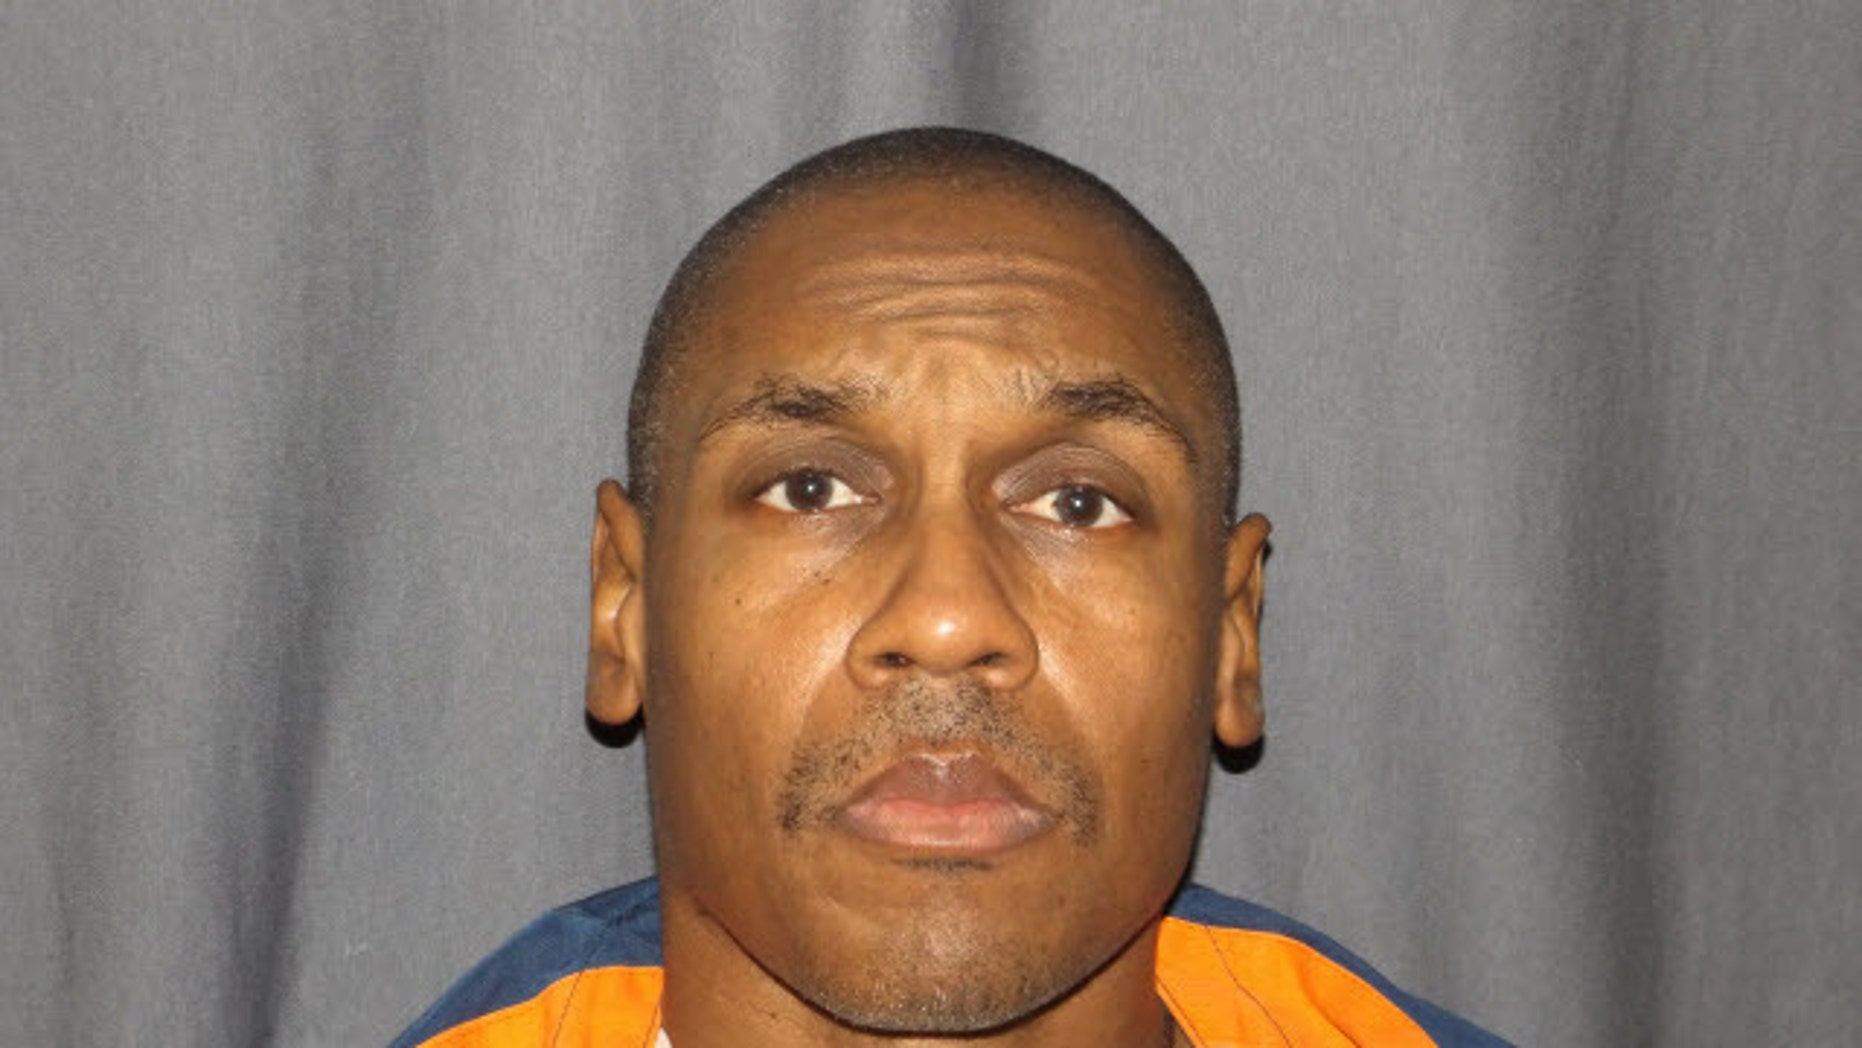 In this undated photo provided by the Michigan Department of Corrections shows Michael Darnell Harris. Ingham County Circuit Court set a Sept. 23, 2016, hearing to consider new evidence that could overturn the conviction of Harris in the slaying of Ula Curdy, the Detroit Free Press reported. Harris is serving life sentences for killing Curdy as well as multiple other women. (Michigan Department of Corrections via AP)